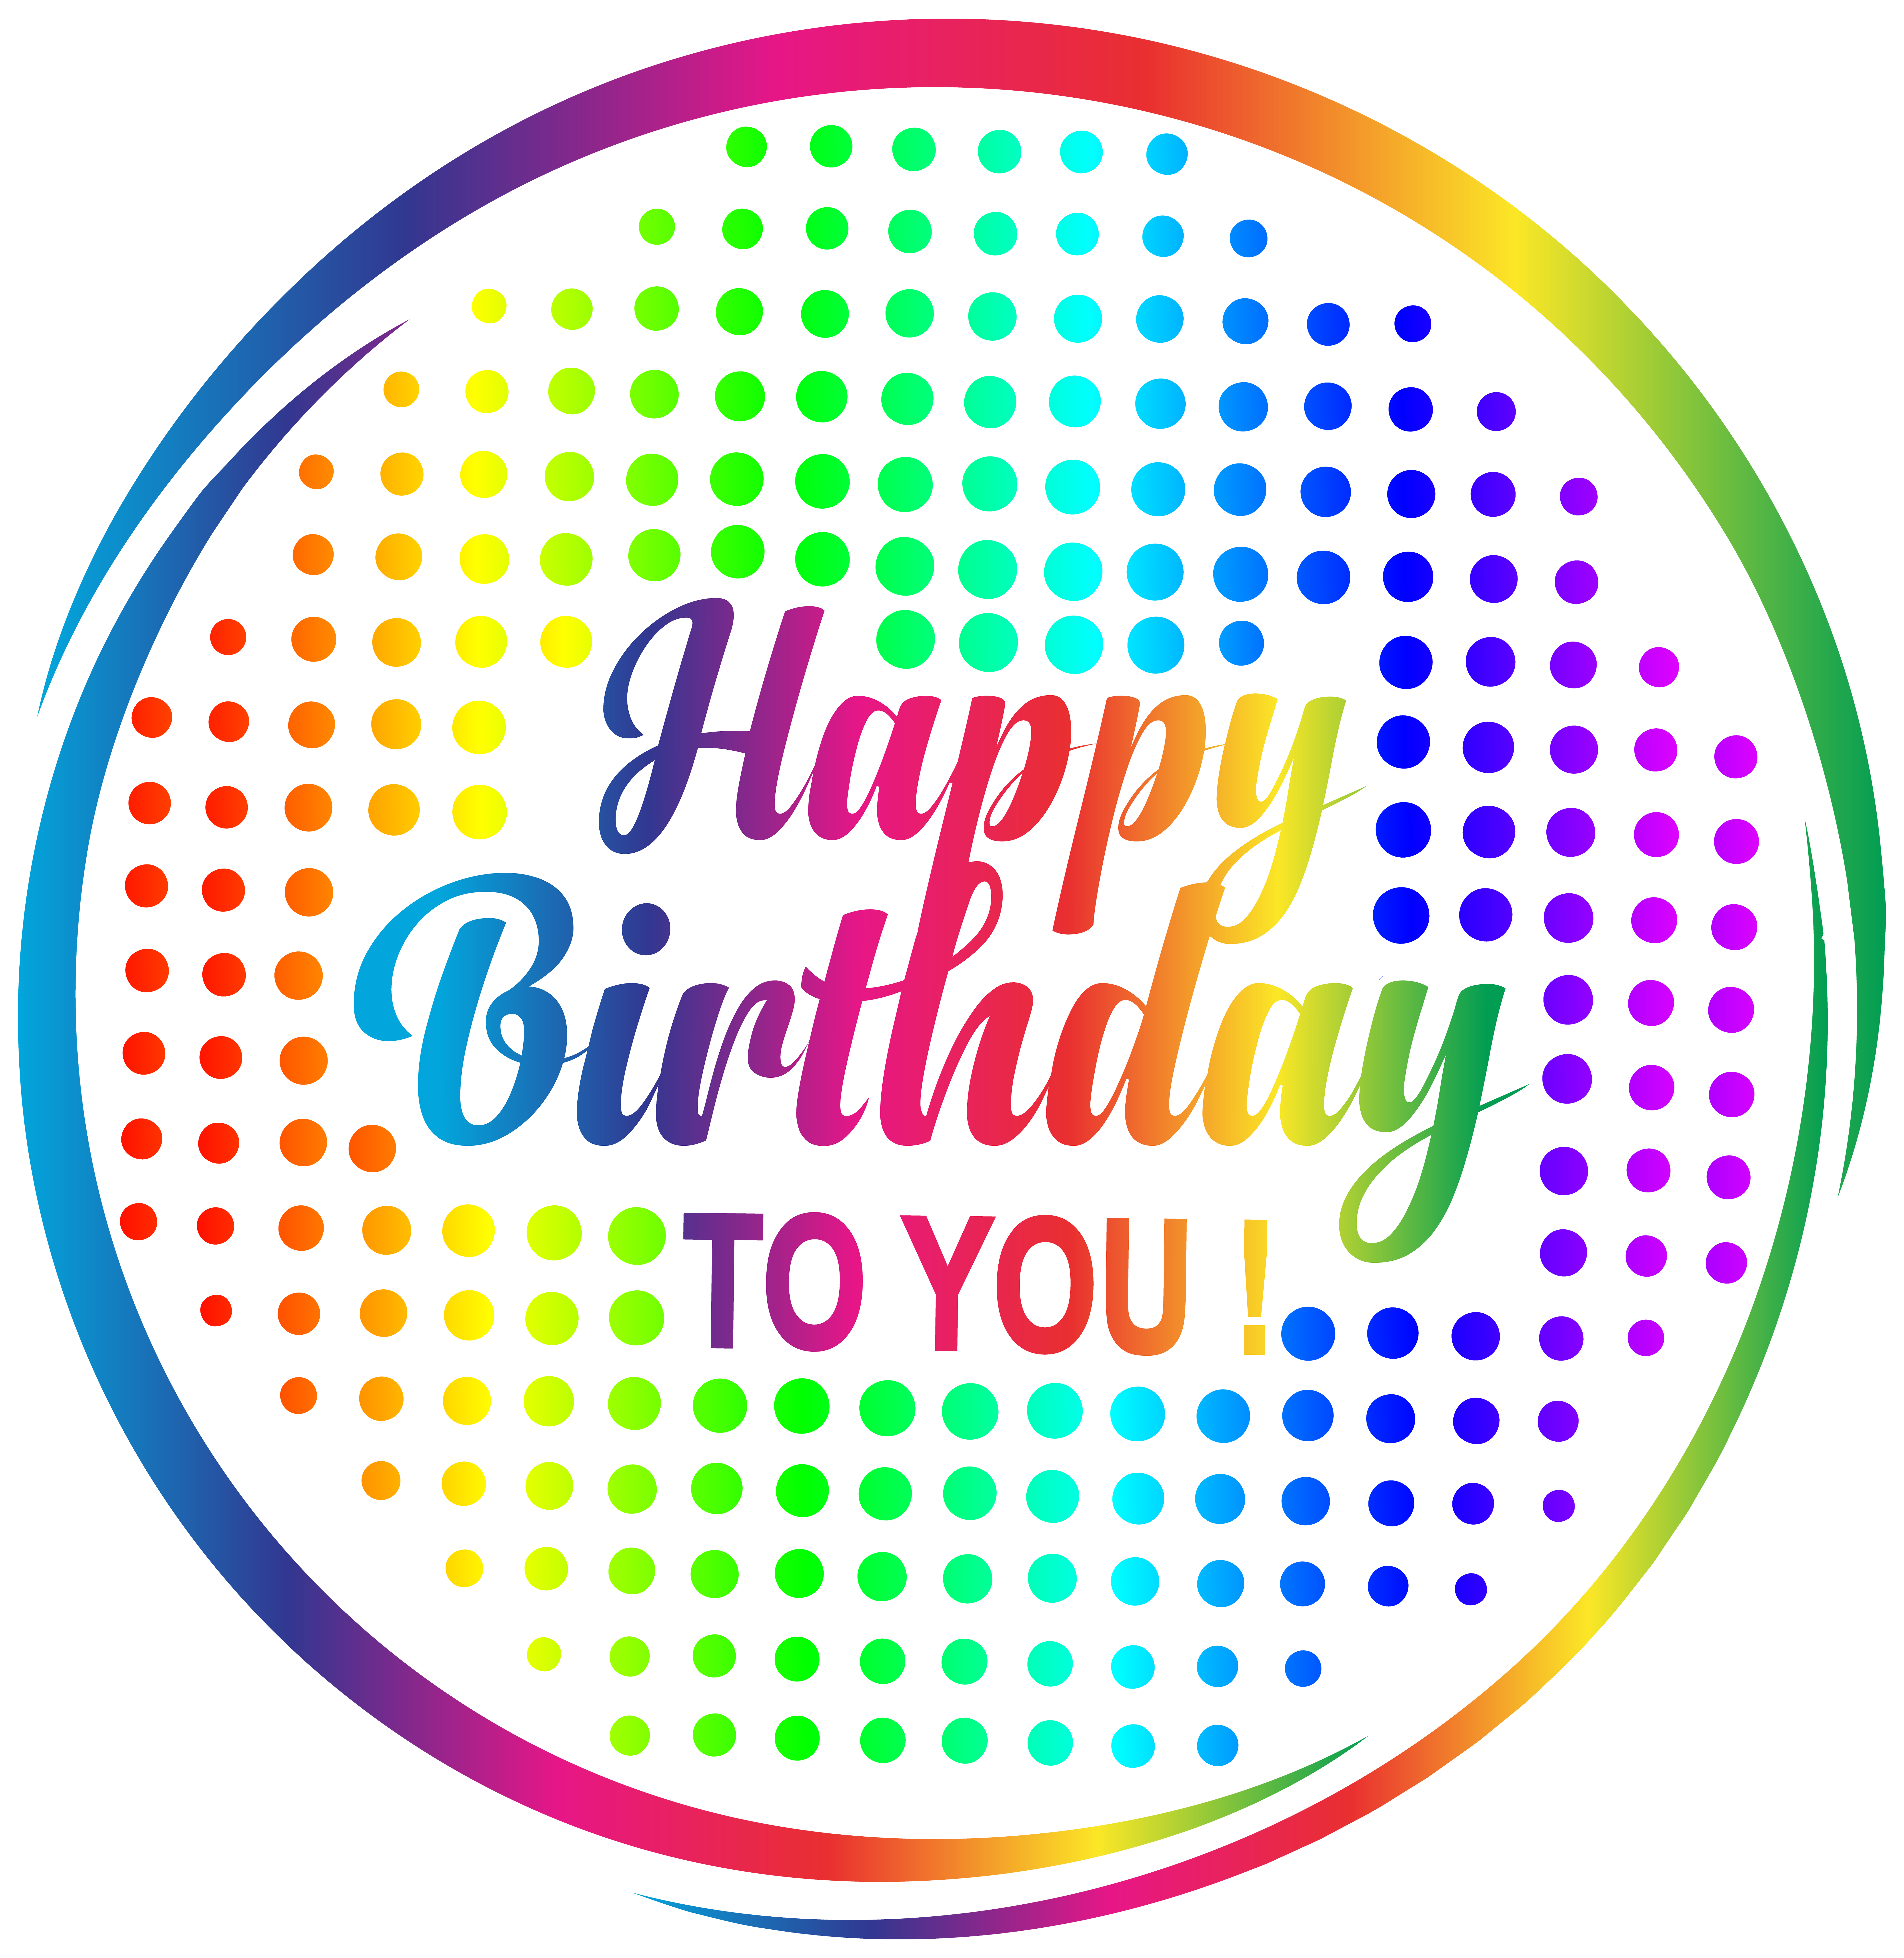 Happy birthday to you png. Multicolour transparent clip art